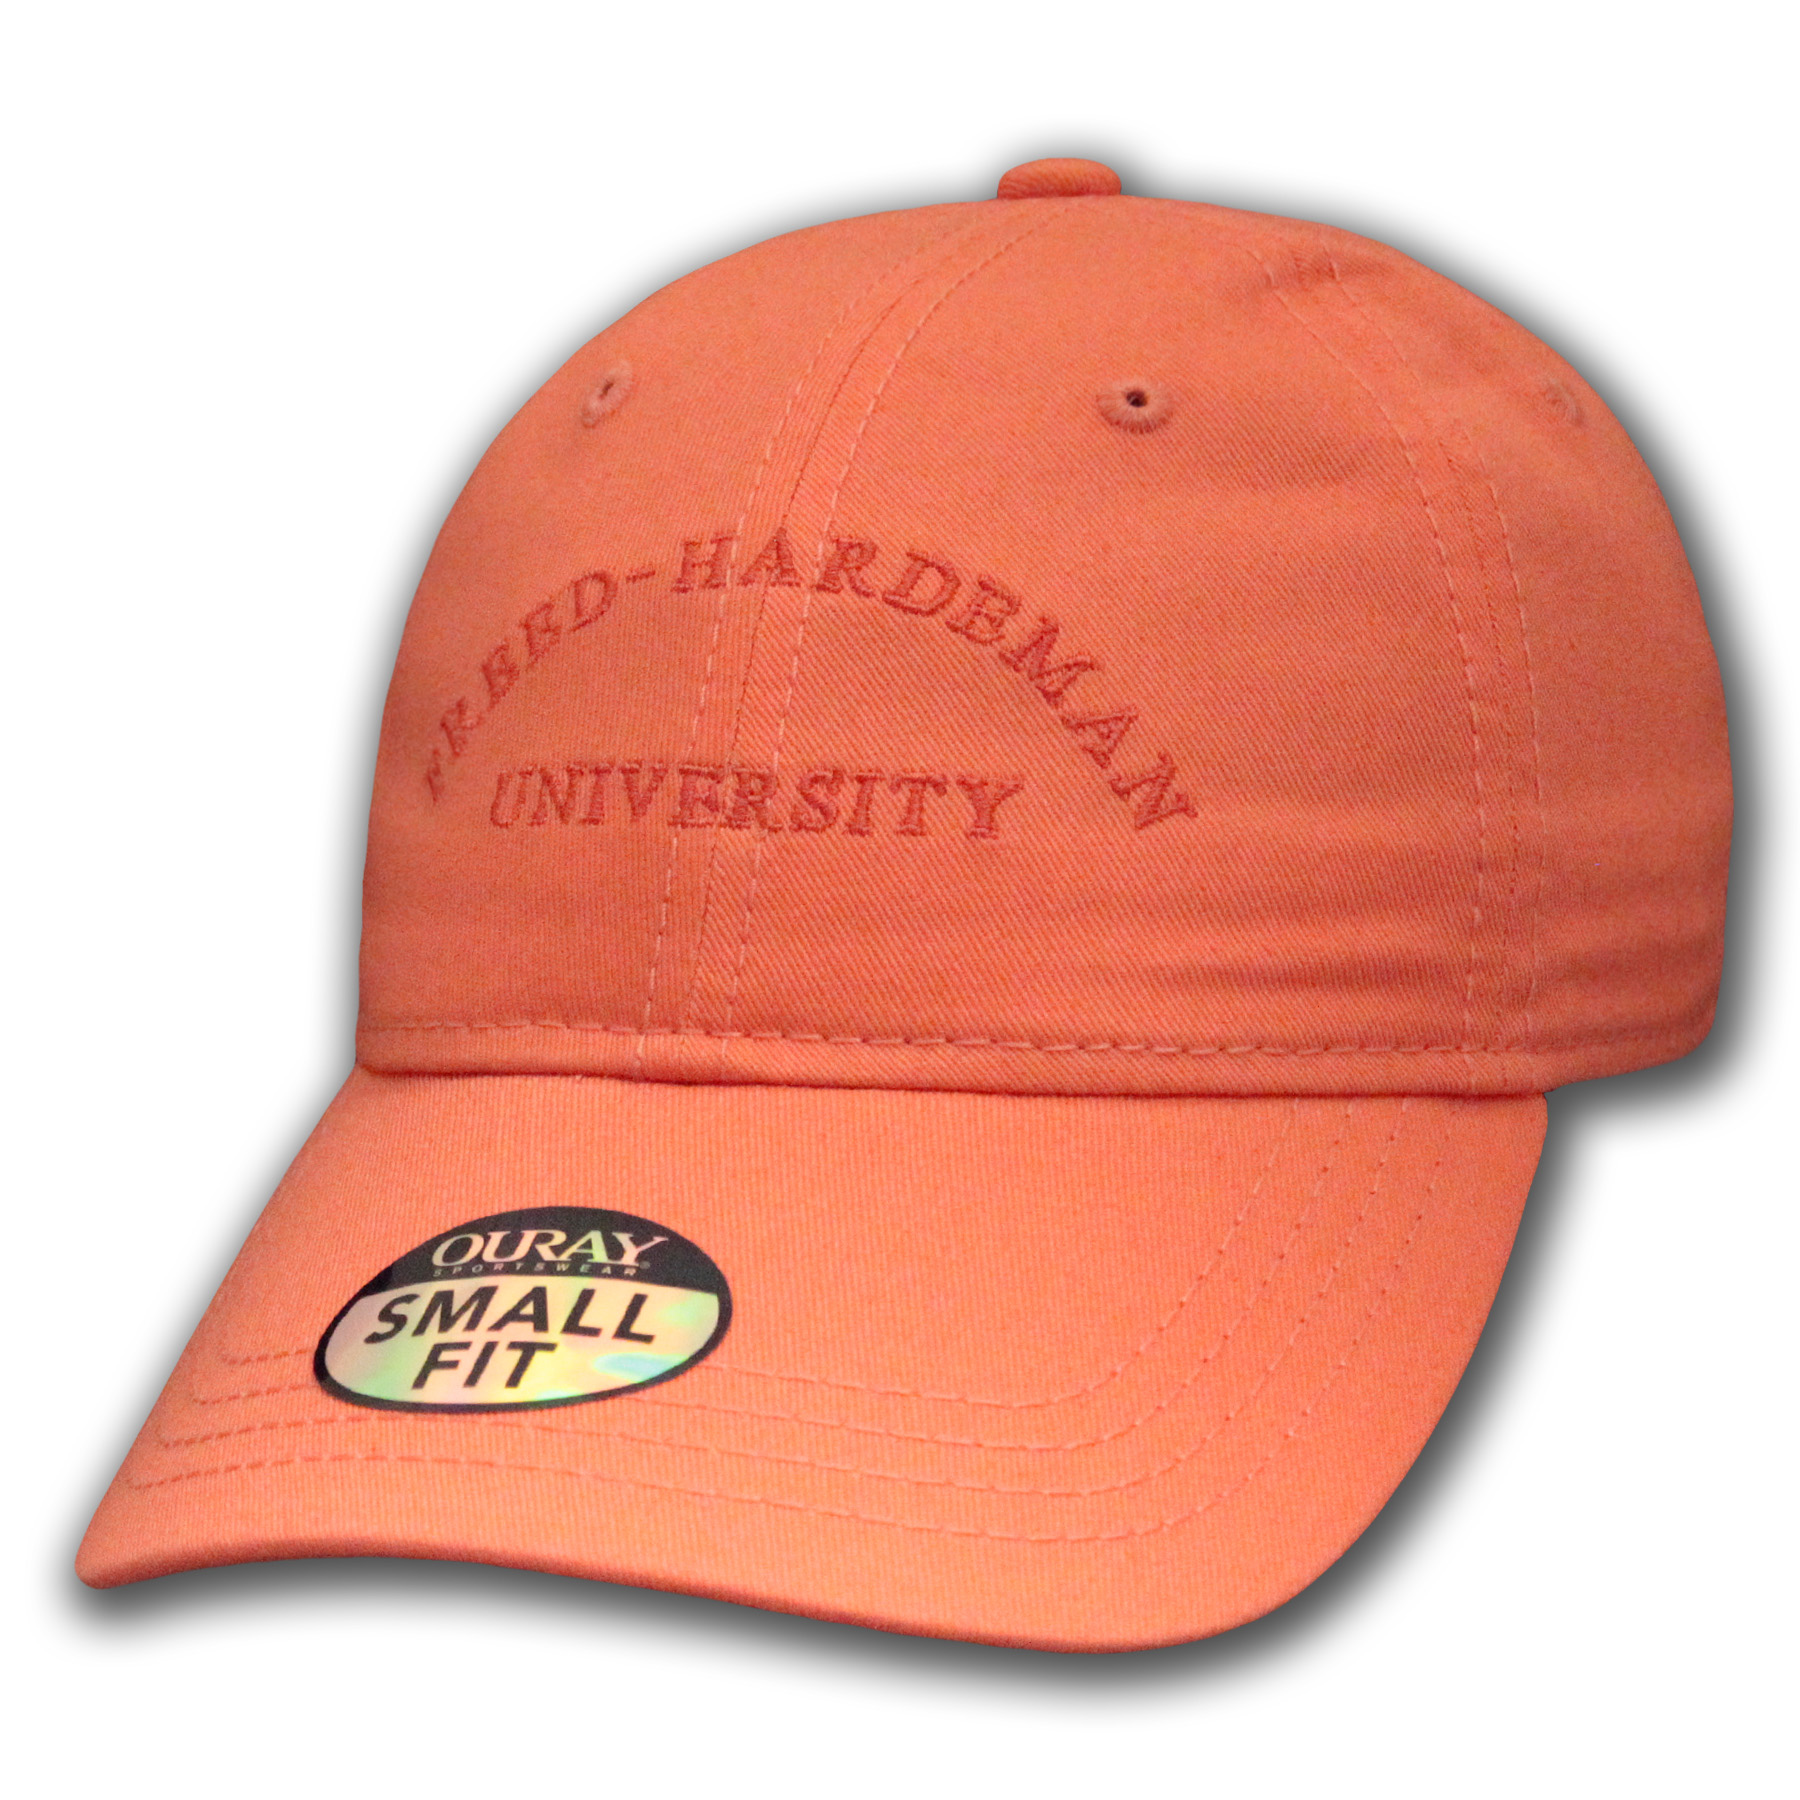 Freed-Hardeman Small Fit Epic Cap